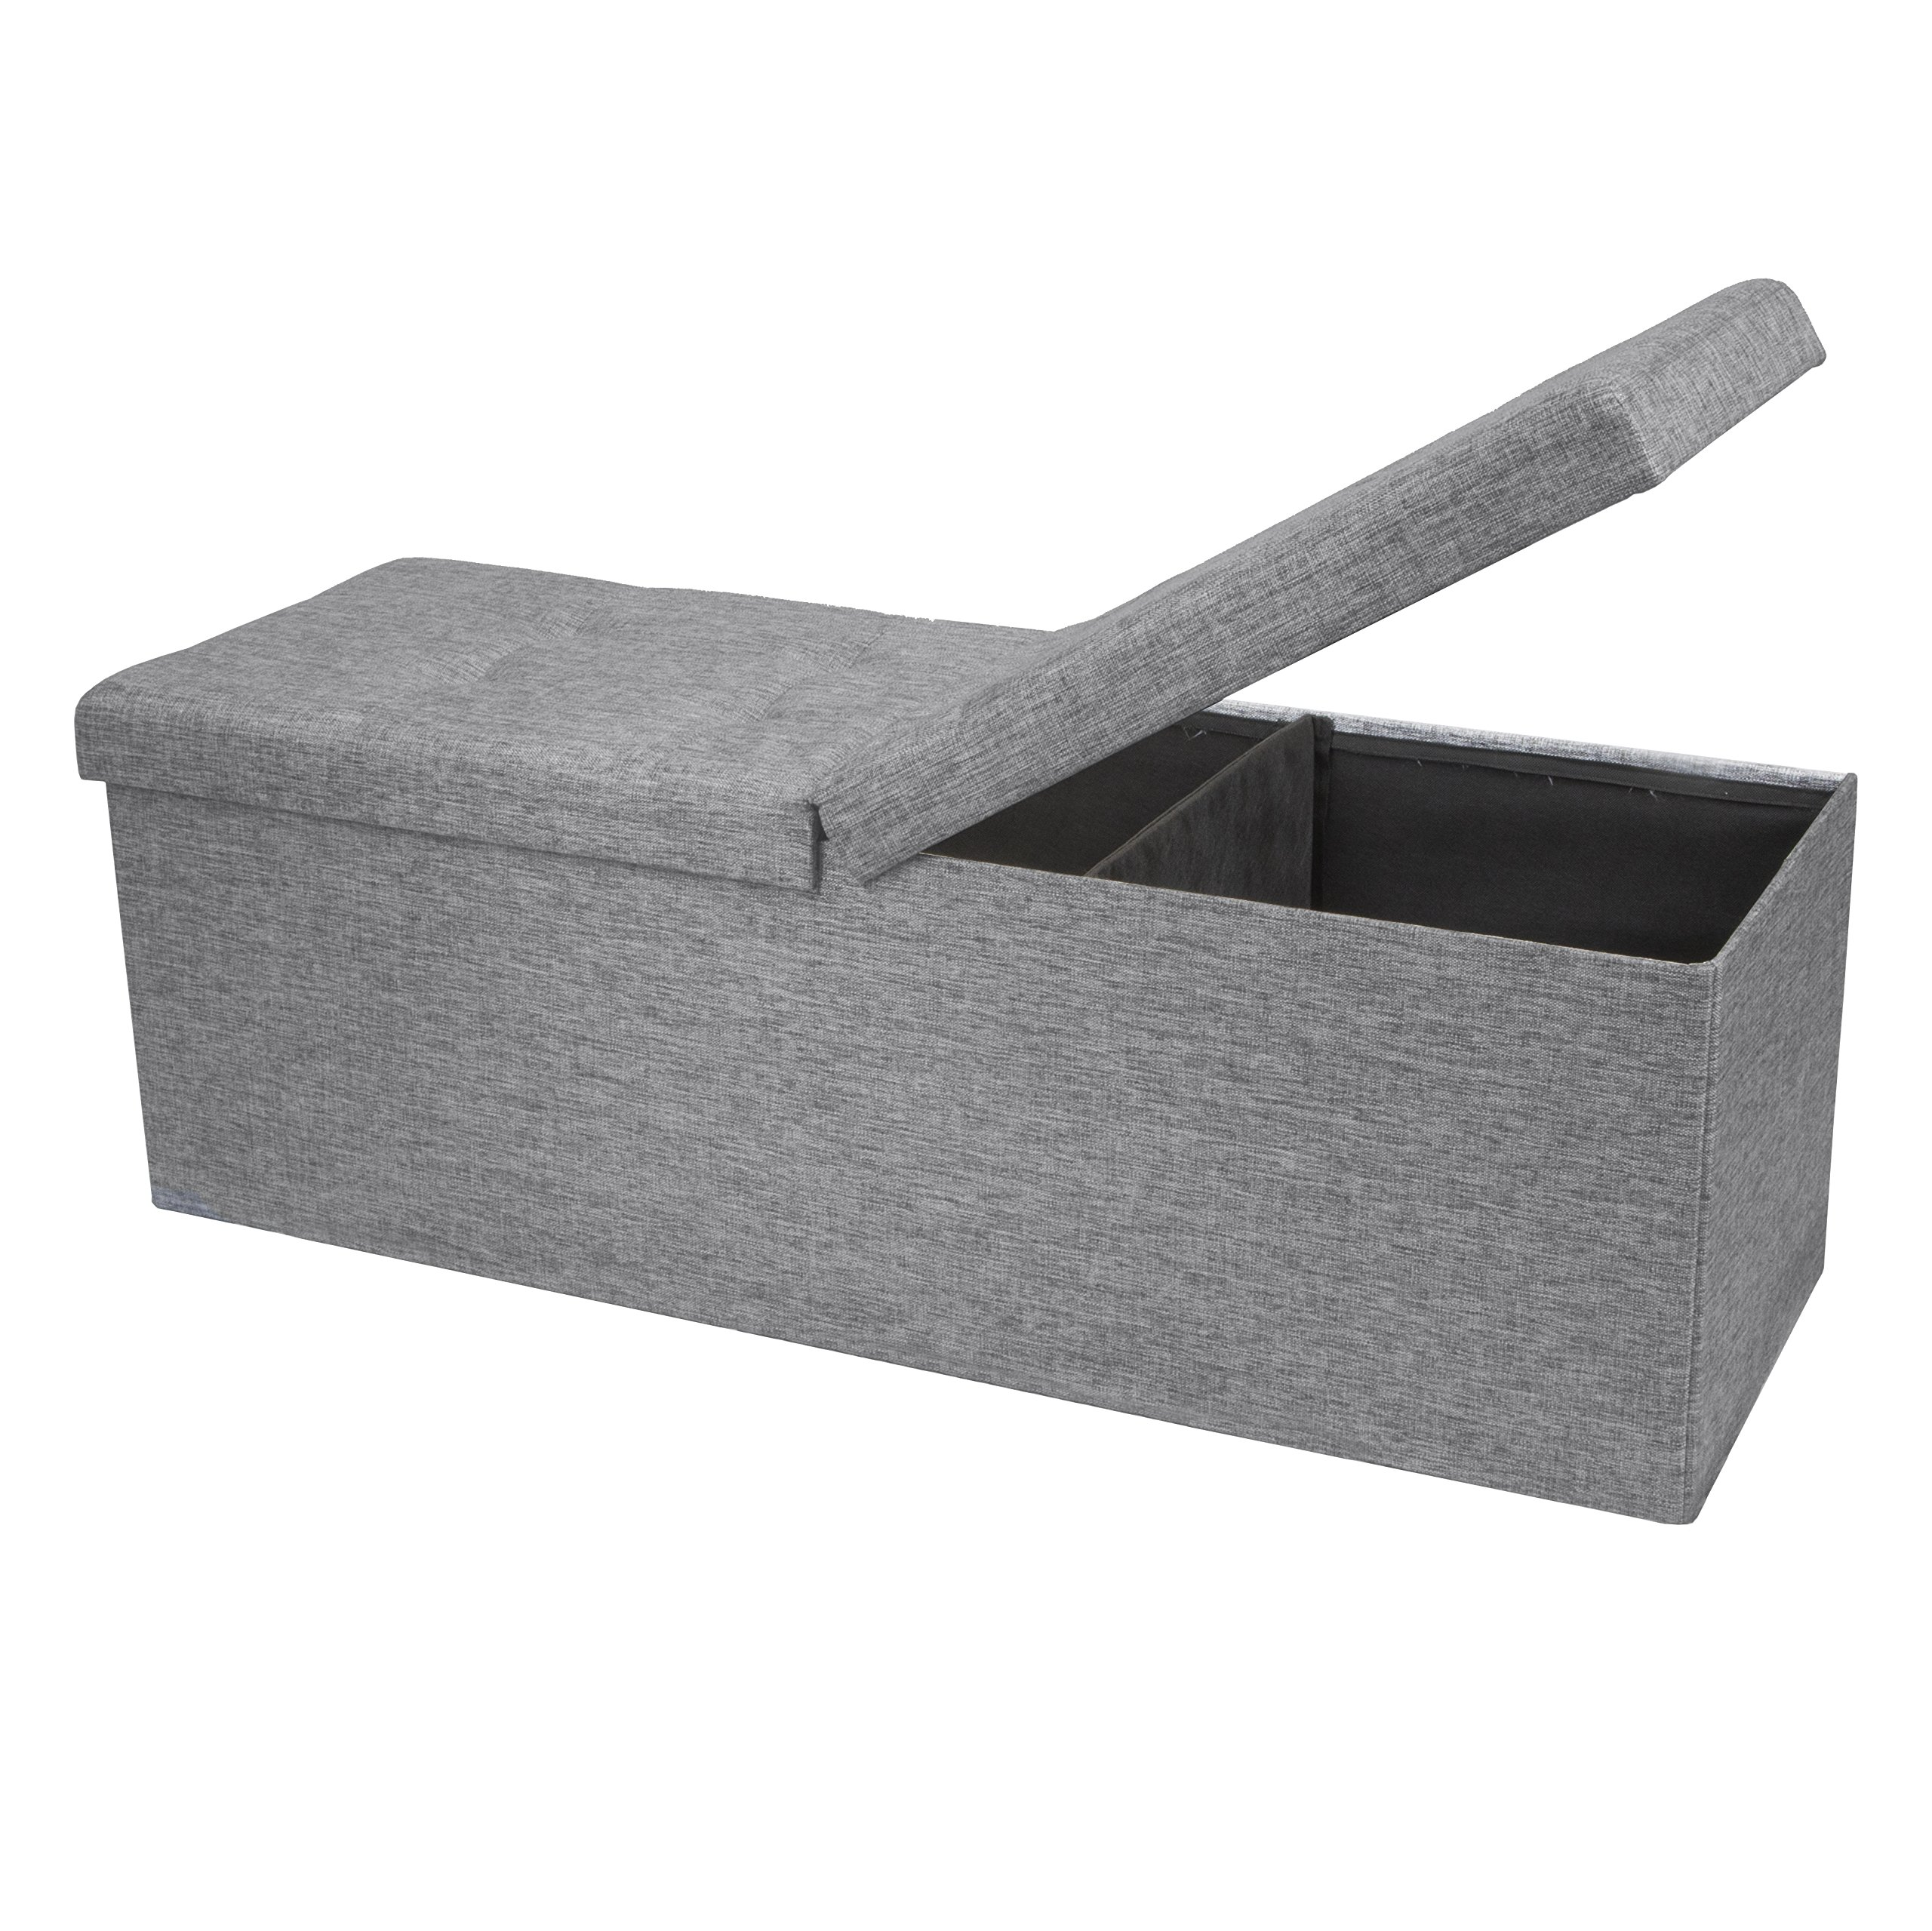 Otto & Ben 45'' Storage Folding Toy Box Chest with Smart Lift Top Linen Fabric Ottomans Bench Foot Rest for Bedroom and Living Room, Light Grey by Otto & Ben